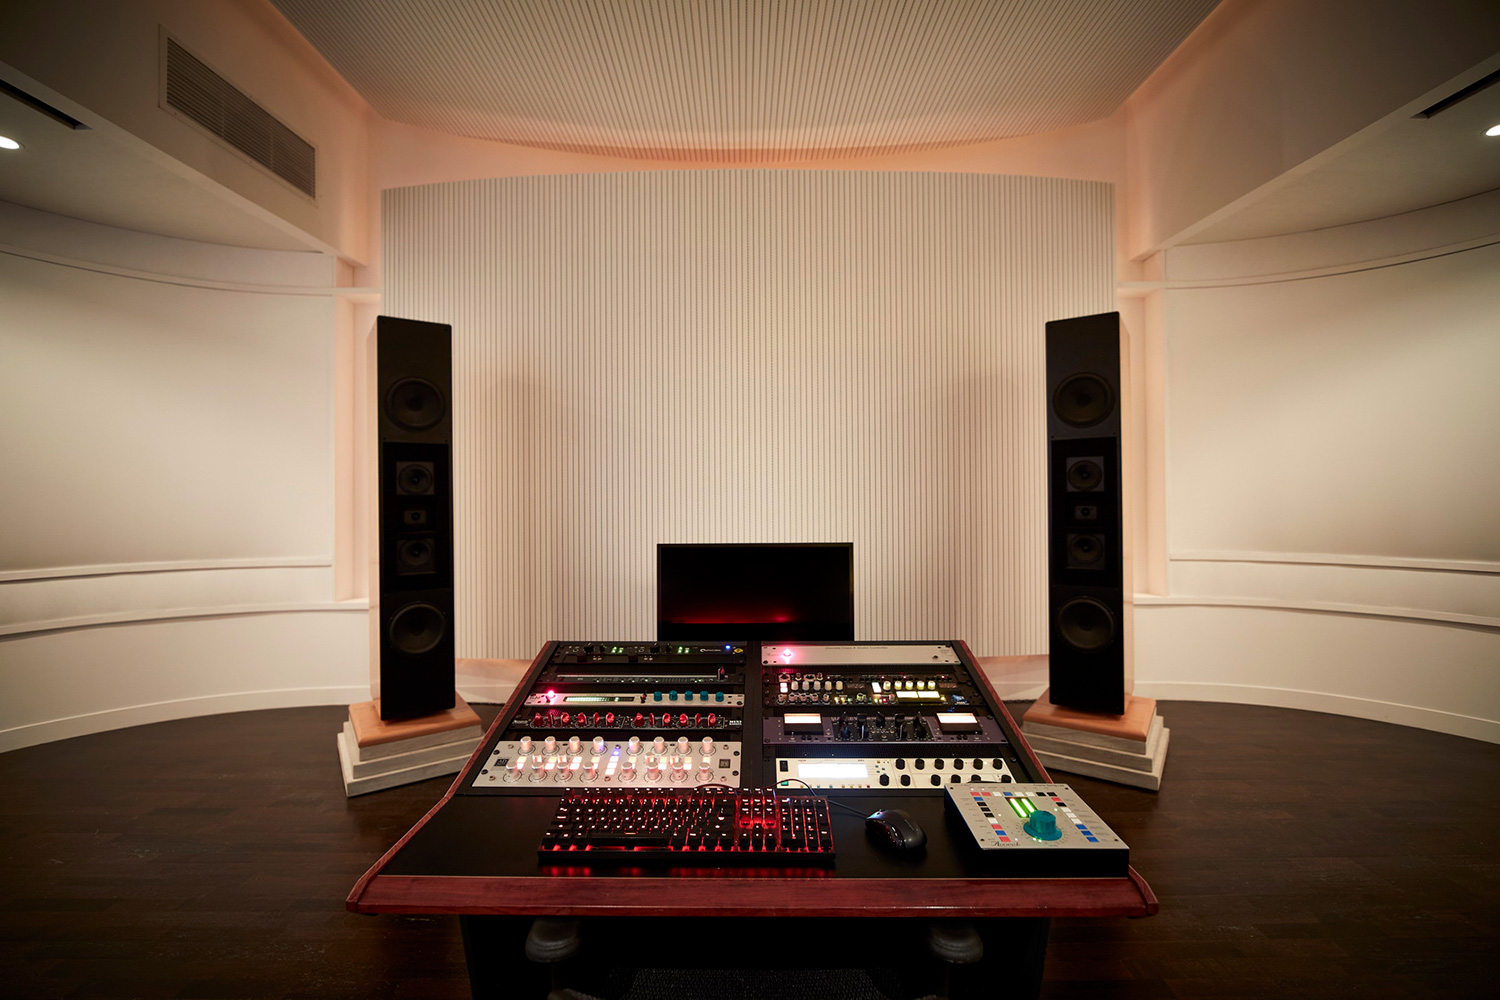 Top mastering engineer and Boiler Room founder Collin Jordan inquired WSDG to fully design his new mastering room in Chicago. WSDG's balance of technical acoustics and artistic design was spot on and made it easy to make the decision. Mastering Room Front View.